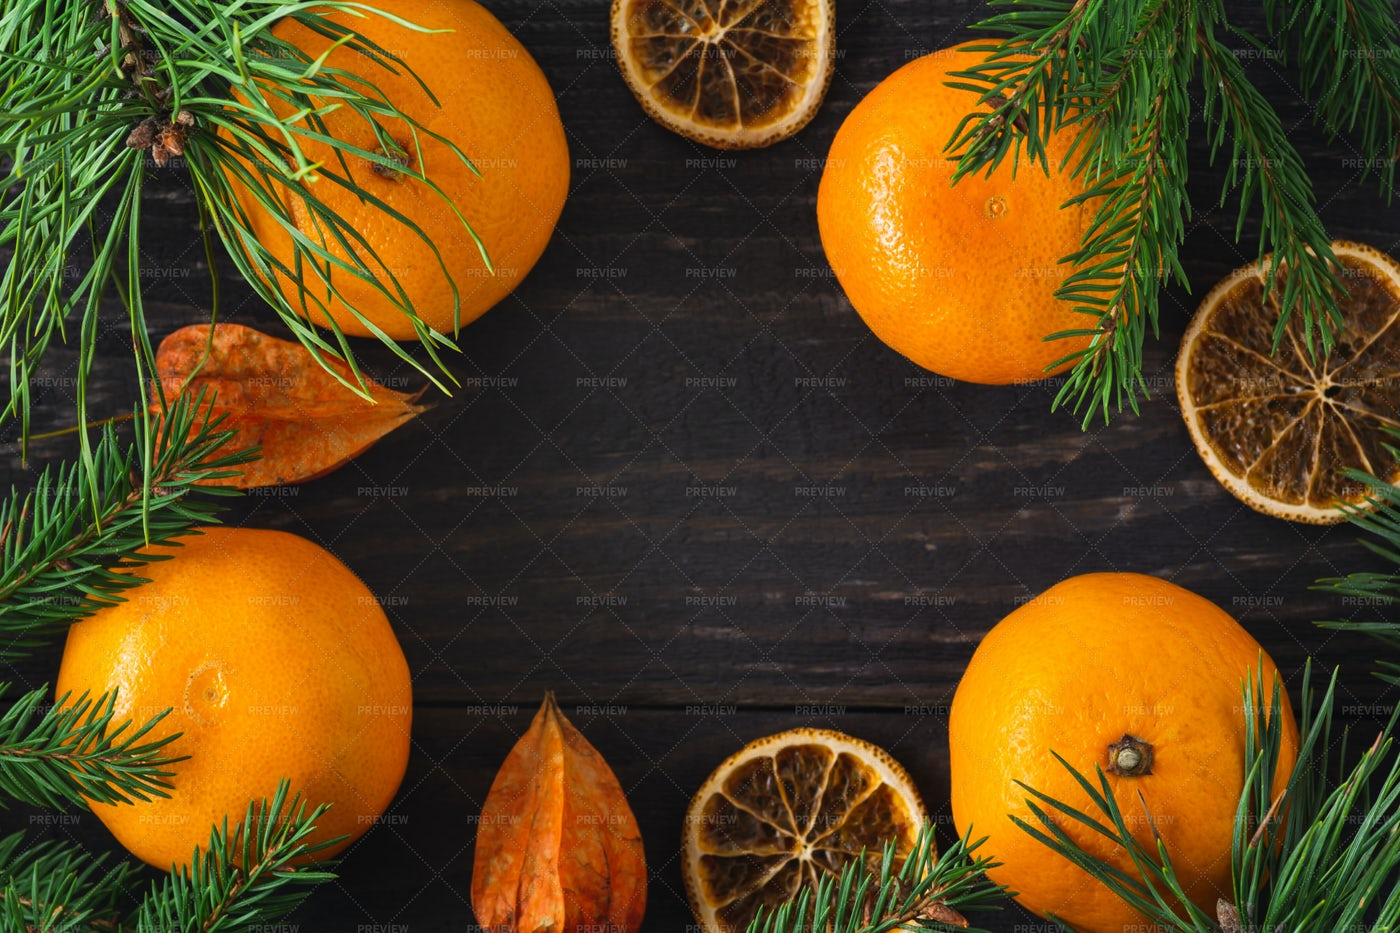 Dried Tangerines Fir Tree Branches: Stock Photos